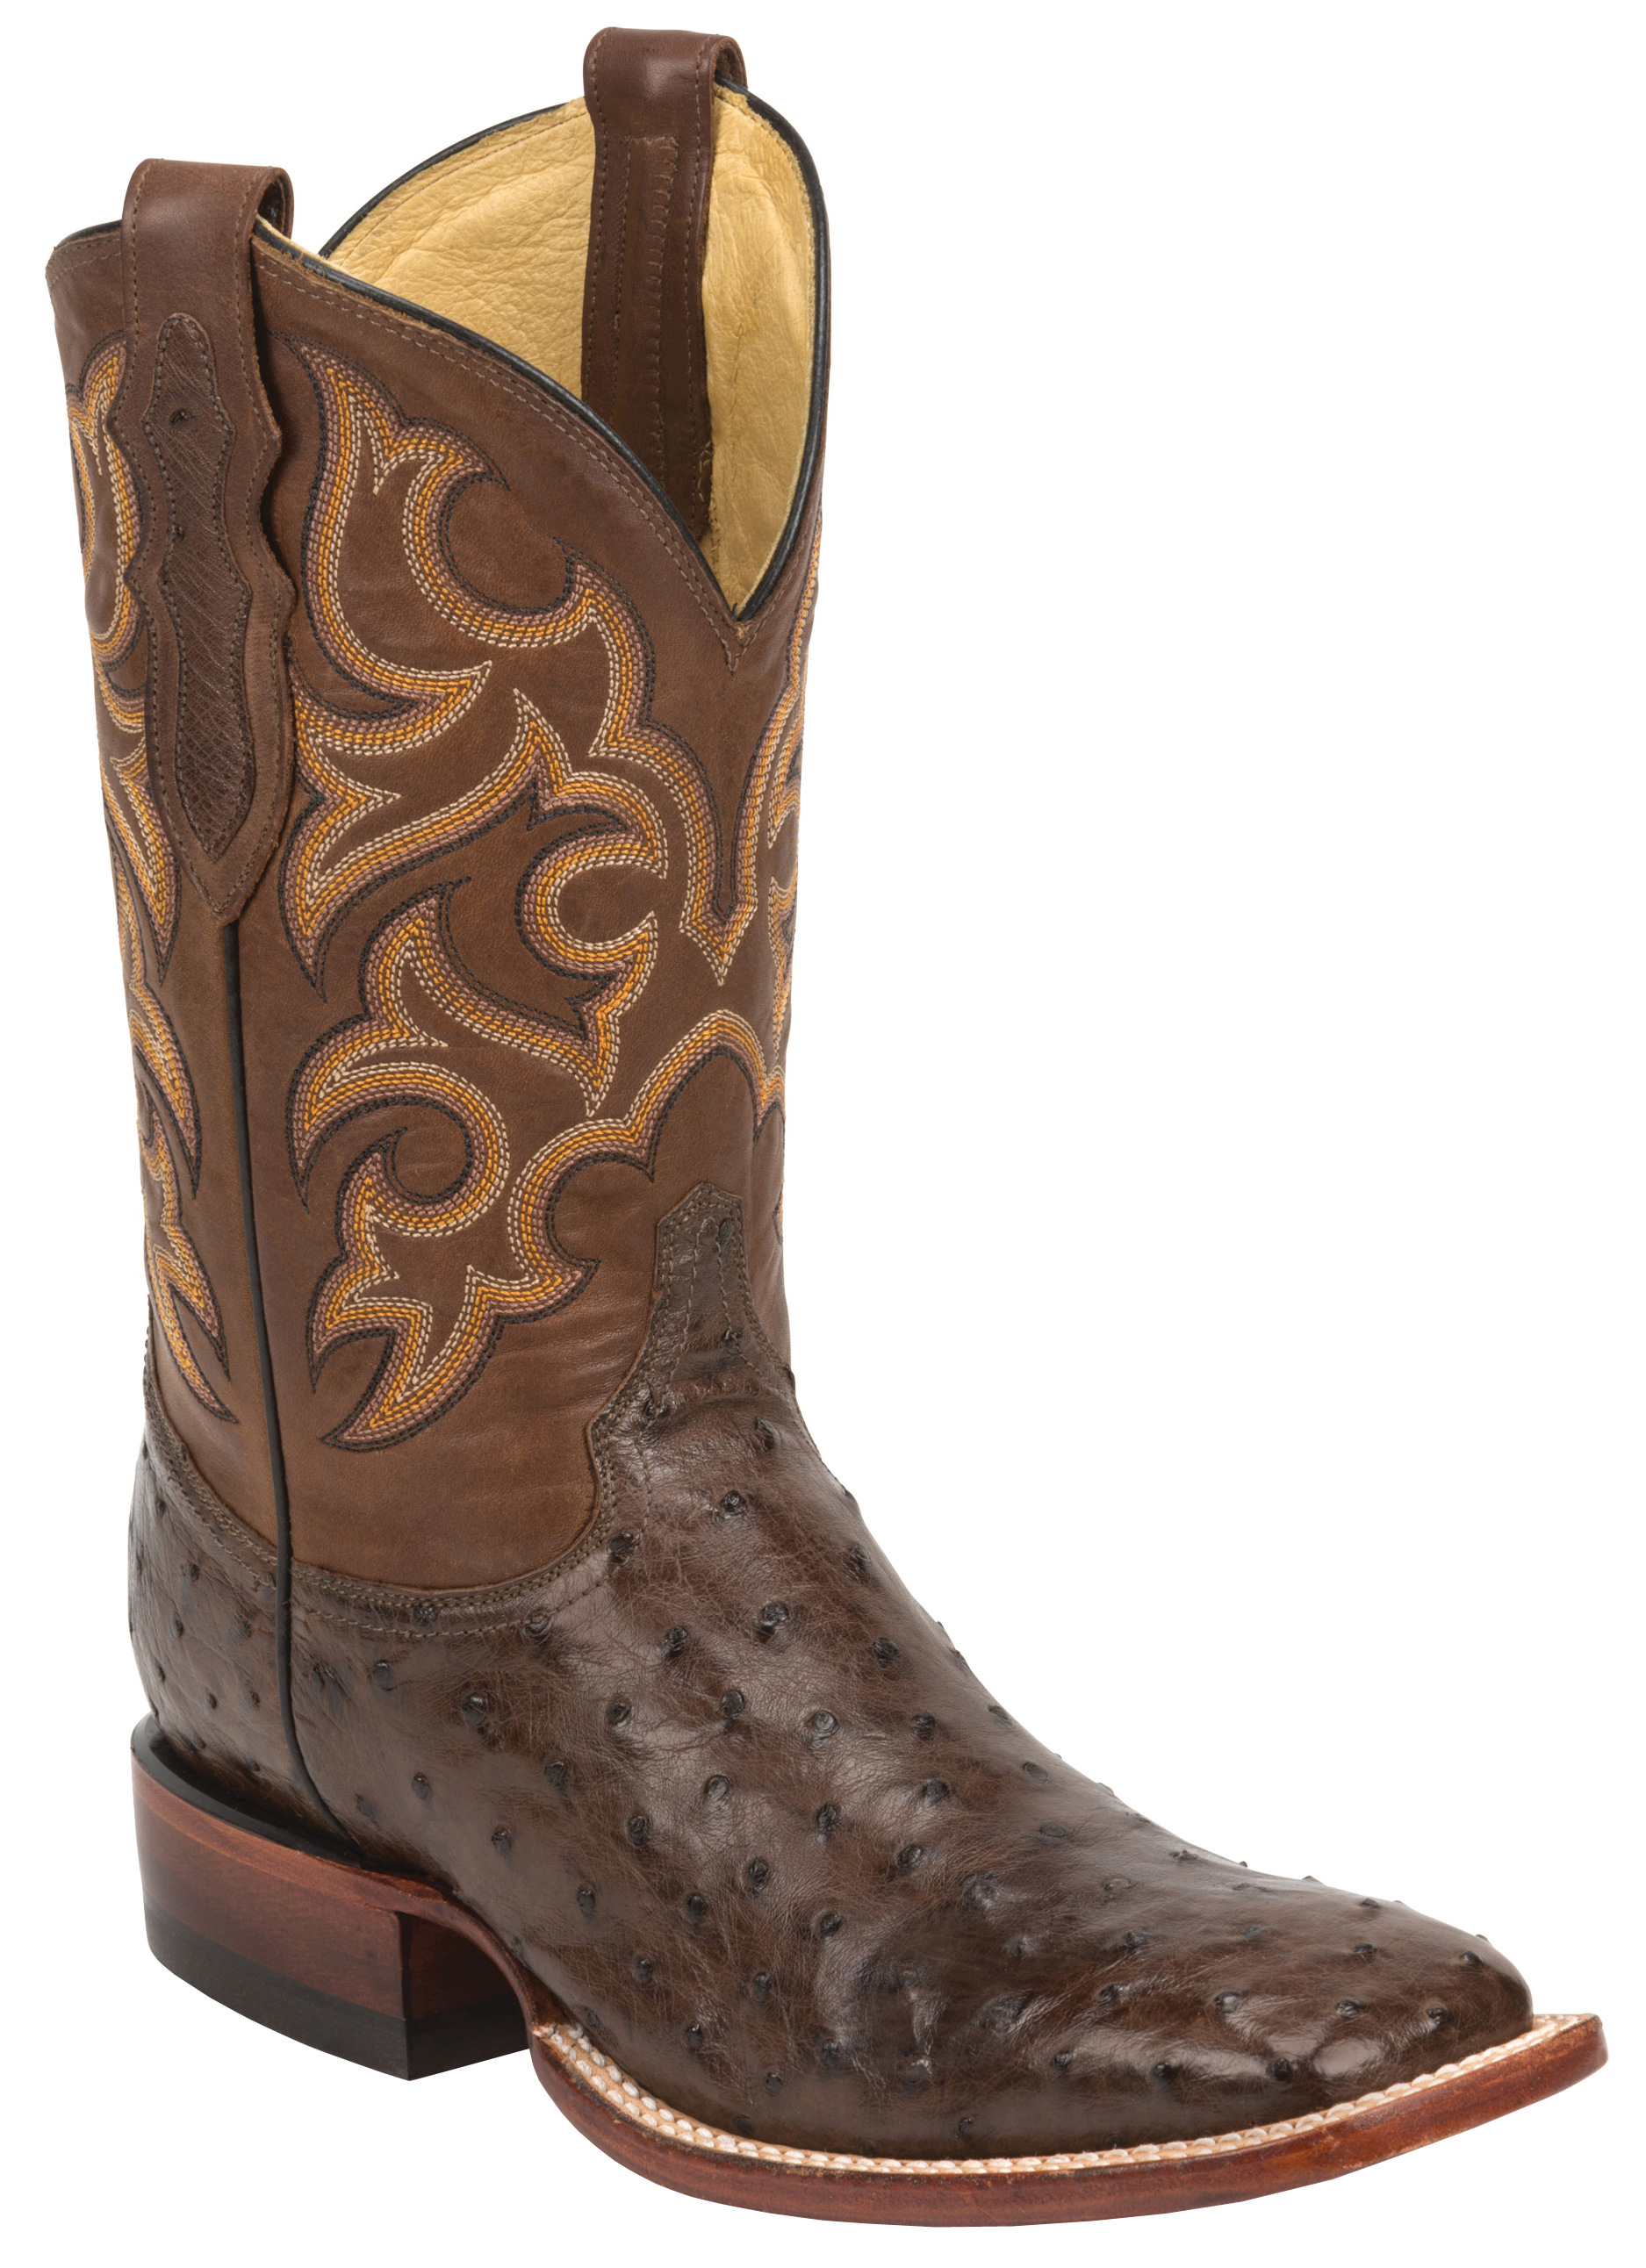 Justin Tobacco Brown Full Quill Ostrich Cowboy Boots